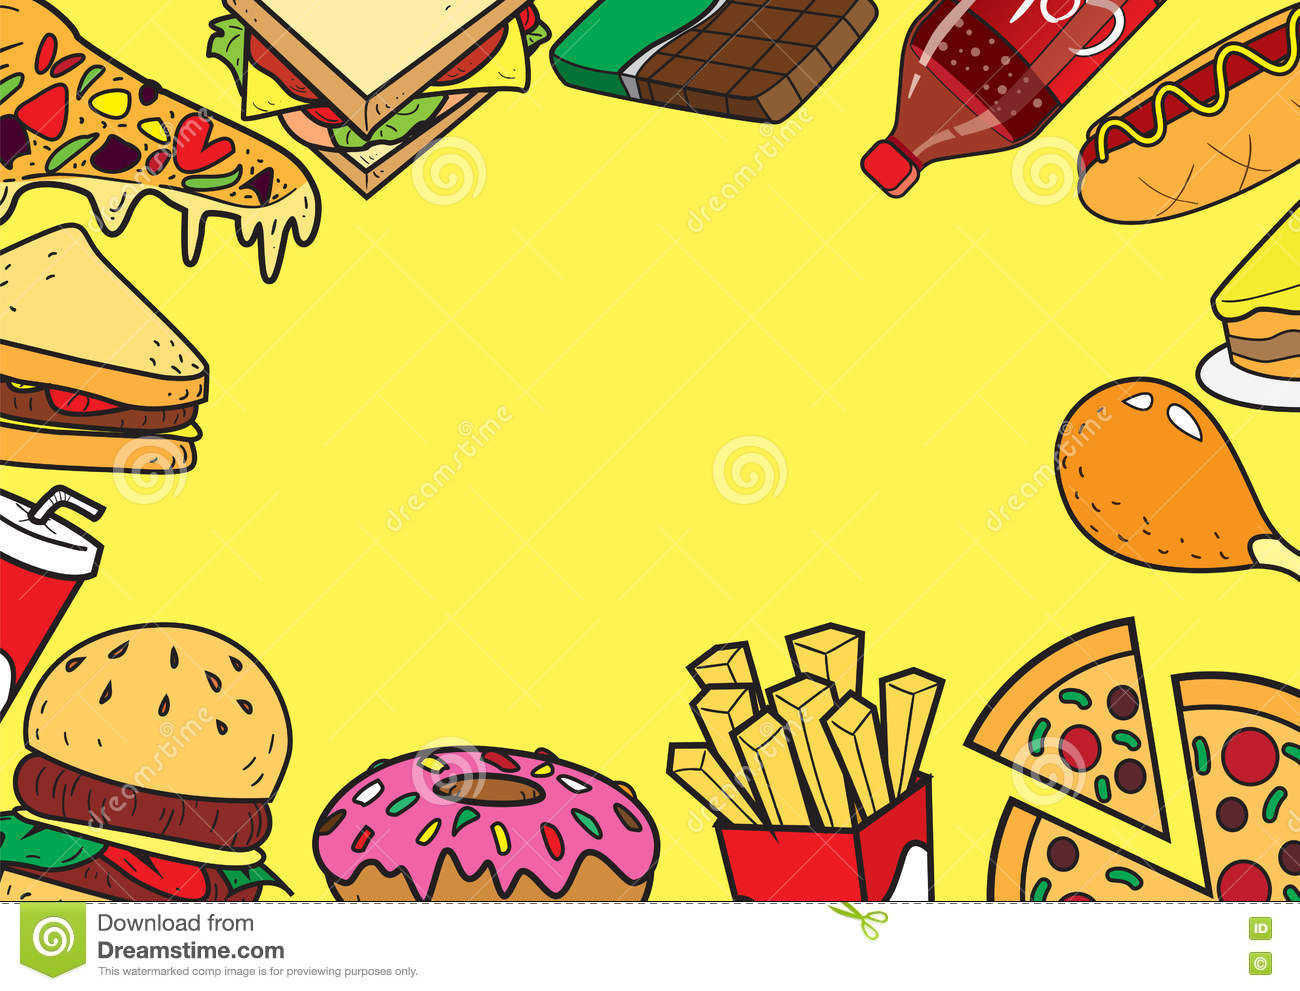 fast foods icon set cartoon vector cartoondealer com cheese pizza clipart images cheese pizza clipart images